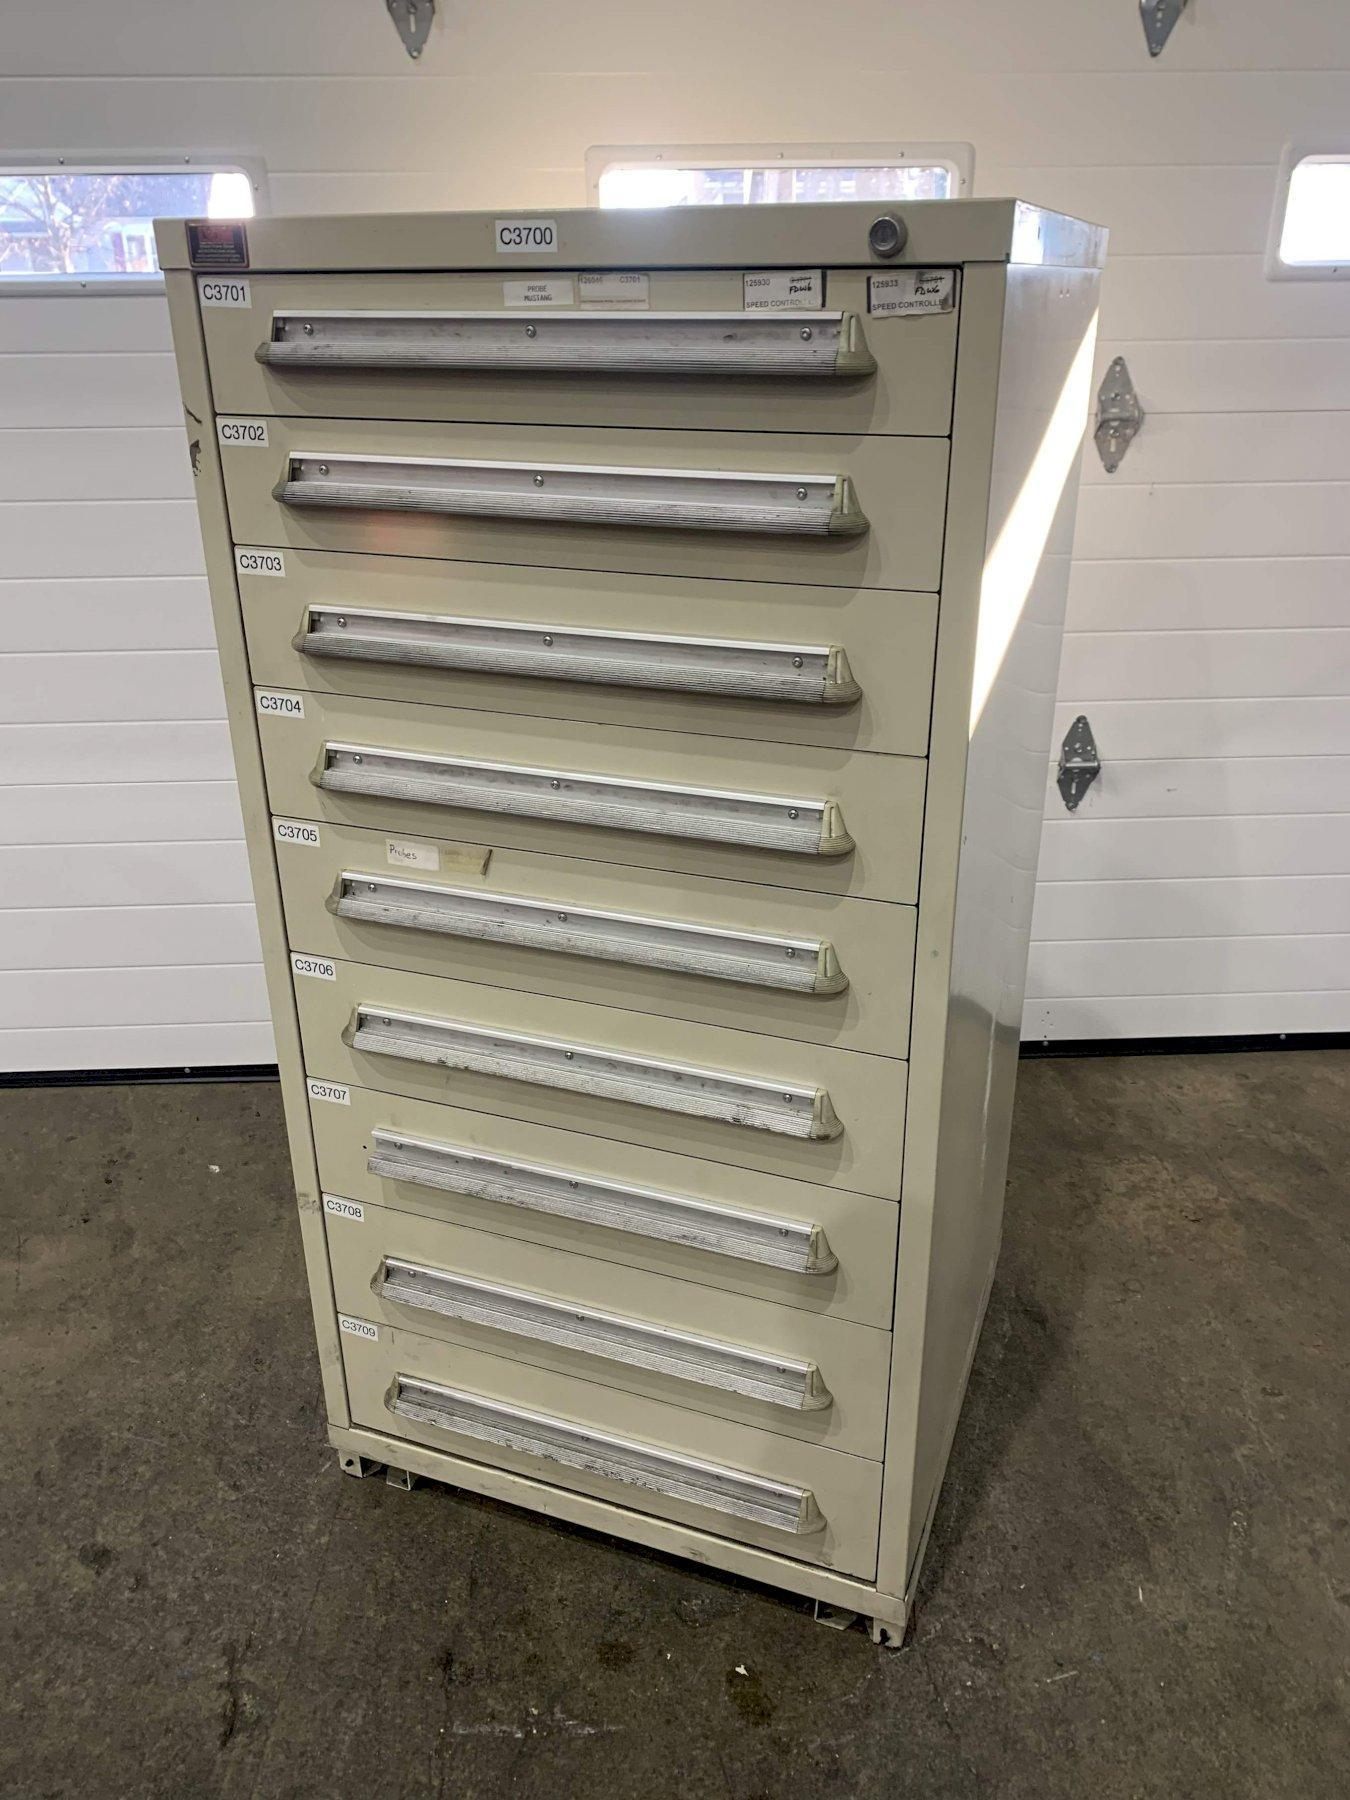 9 DRAWER LYON CABINET: STOCK #73704